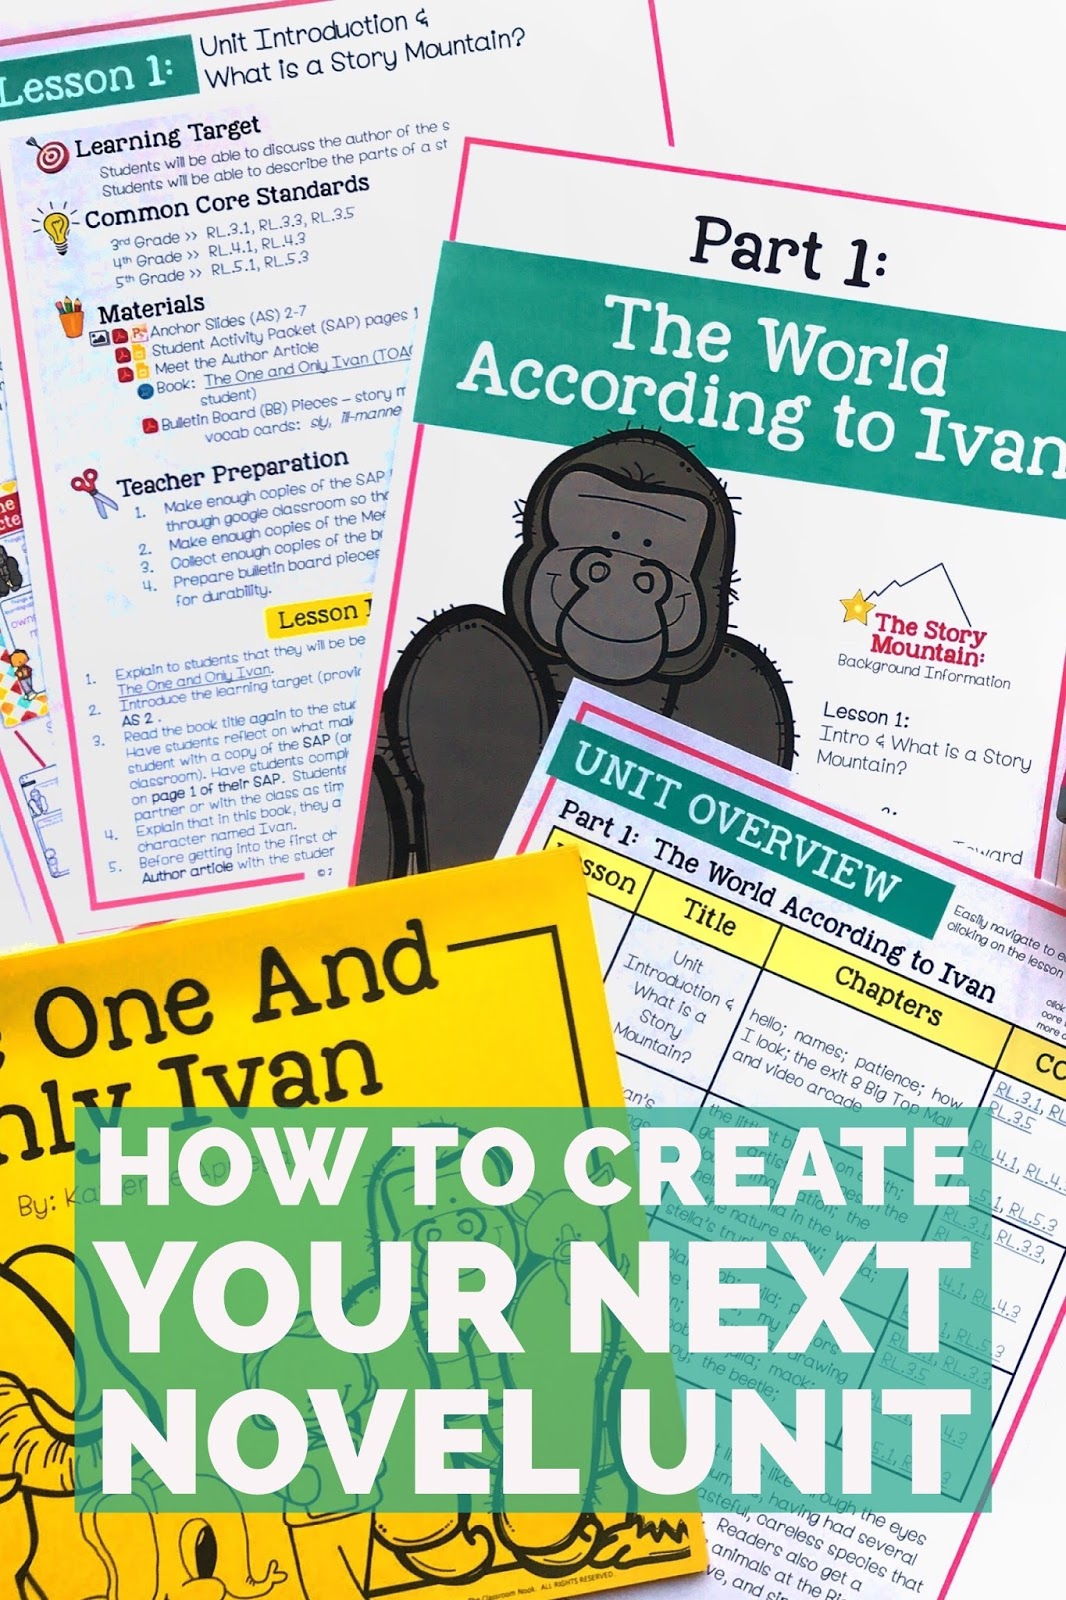 This post includes ideas for how to create an awesome novel unit - PLUS it includes ideas for the book:  The One and Only Ivan #novels #teachingreading #curriculumplanning